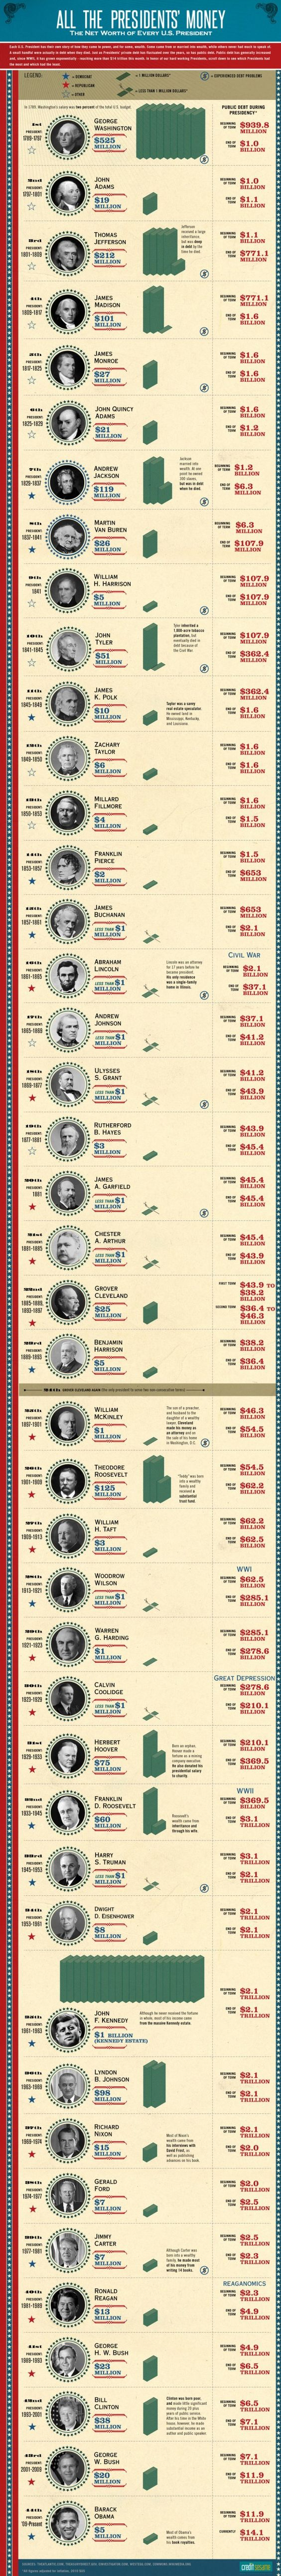 What are the easiest presidents to write an essay about?